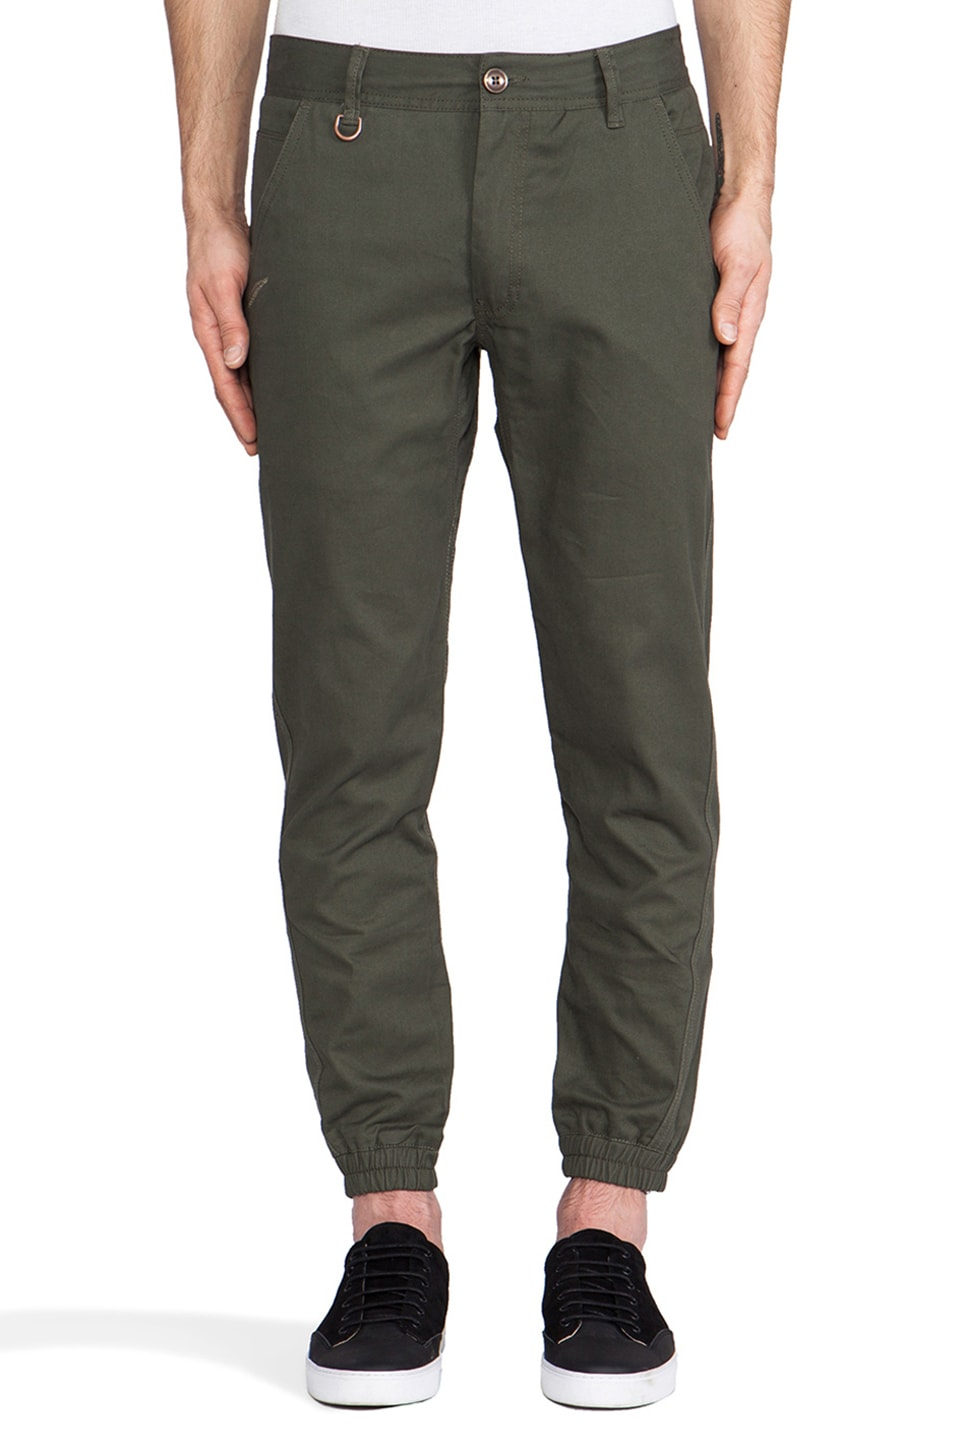 Publish Jogger in Olive